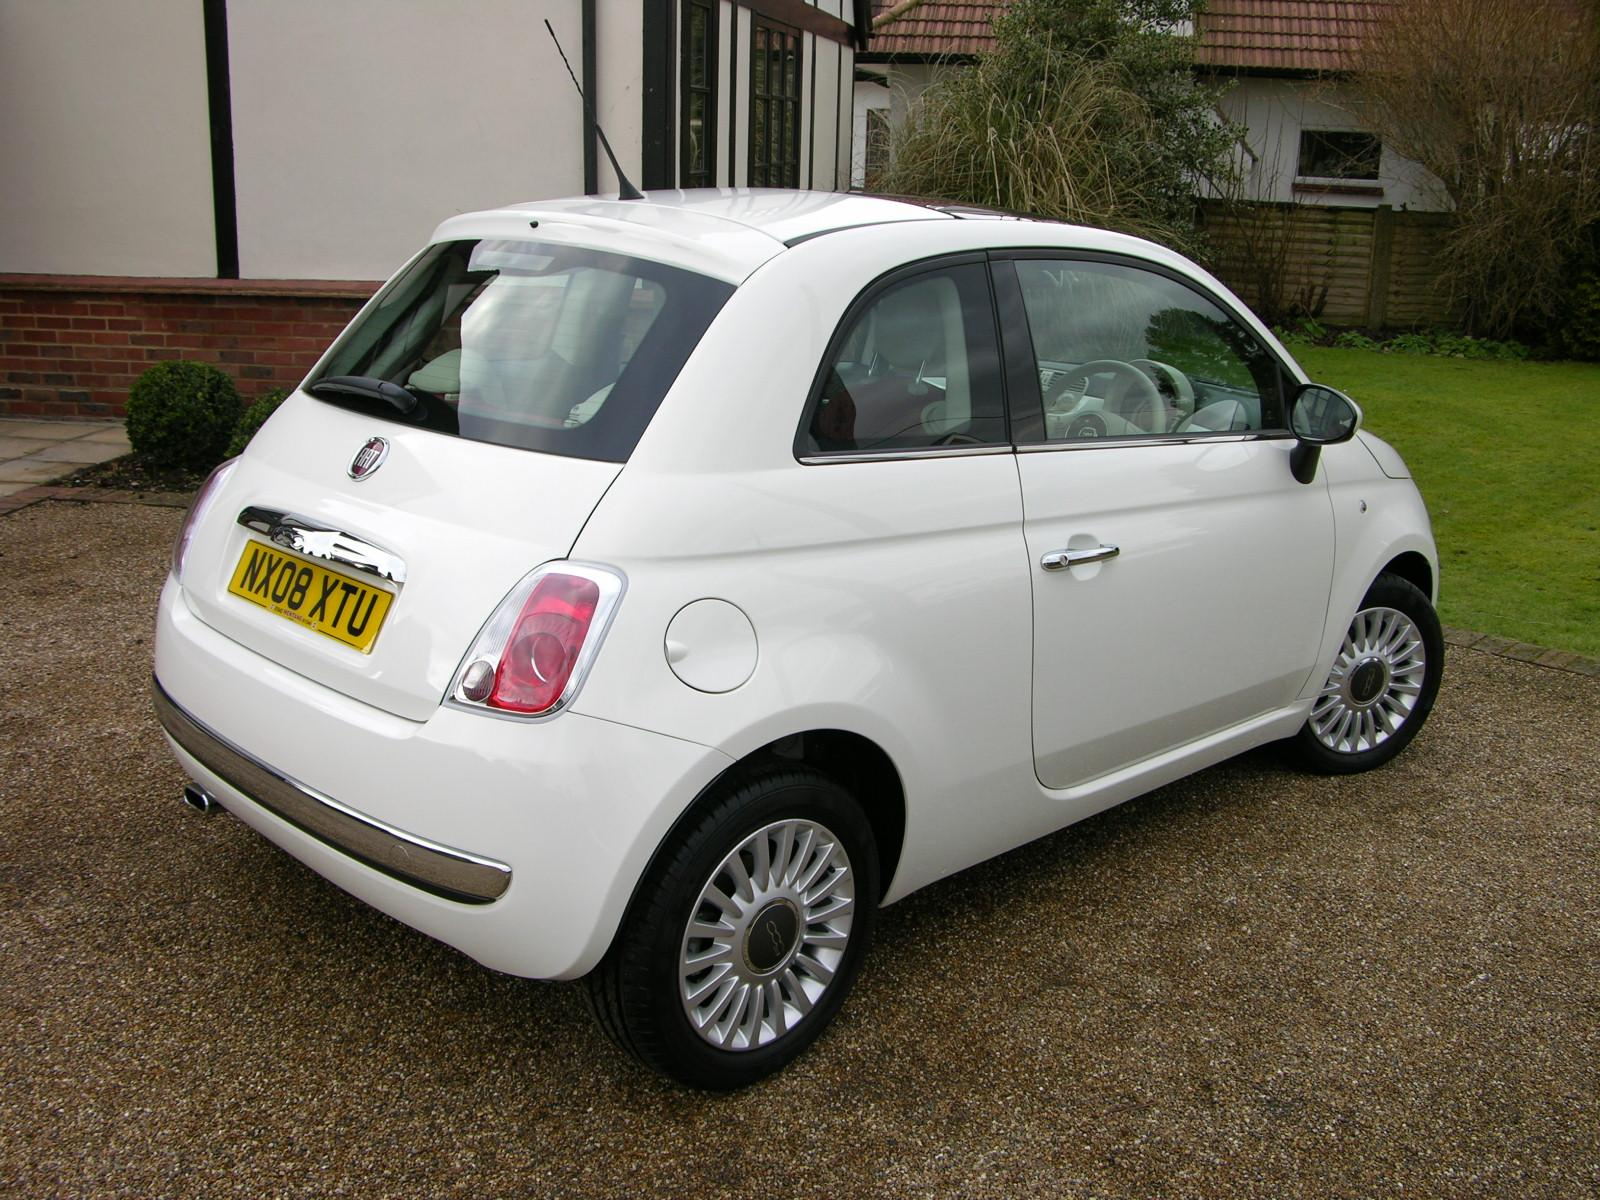 file 2008 fiat 500 1 4 lounge flickr the car spy 14 jpg wikimedia commons. Black Bedroom Furniture Sets. Home Design Ideas